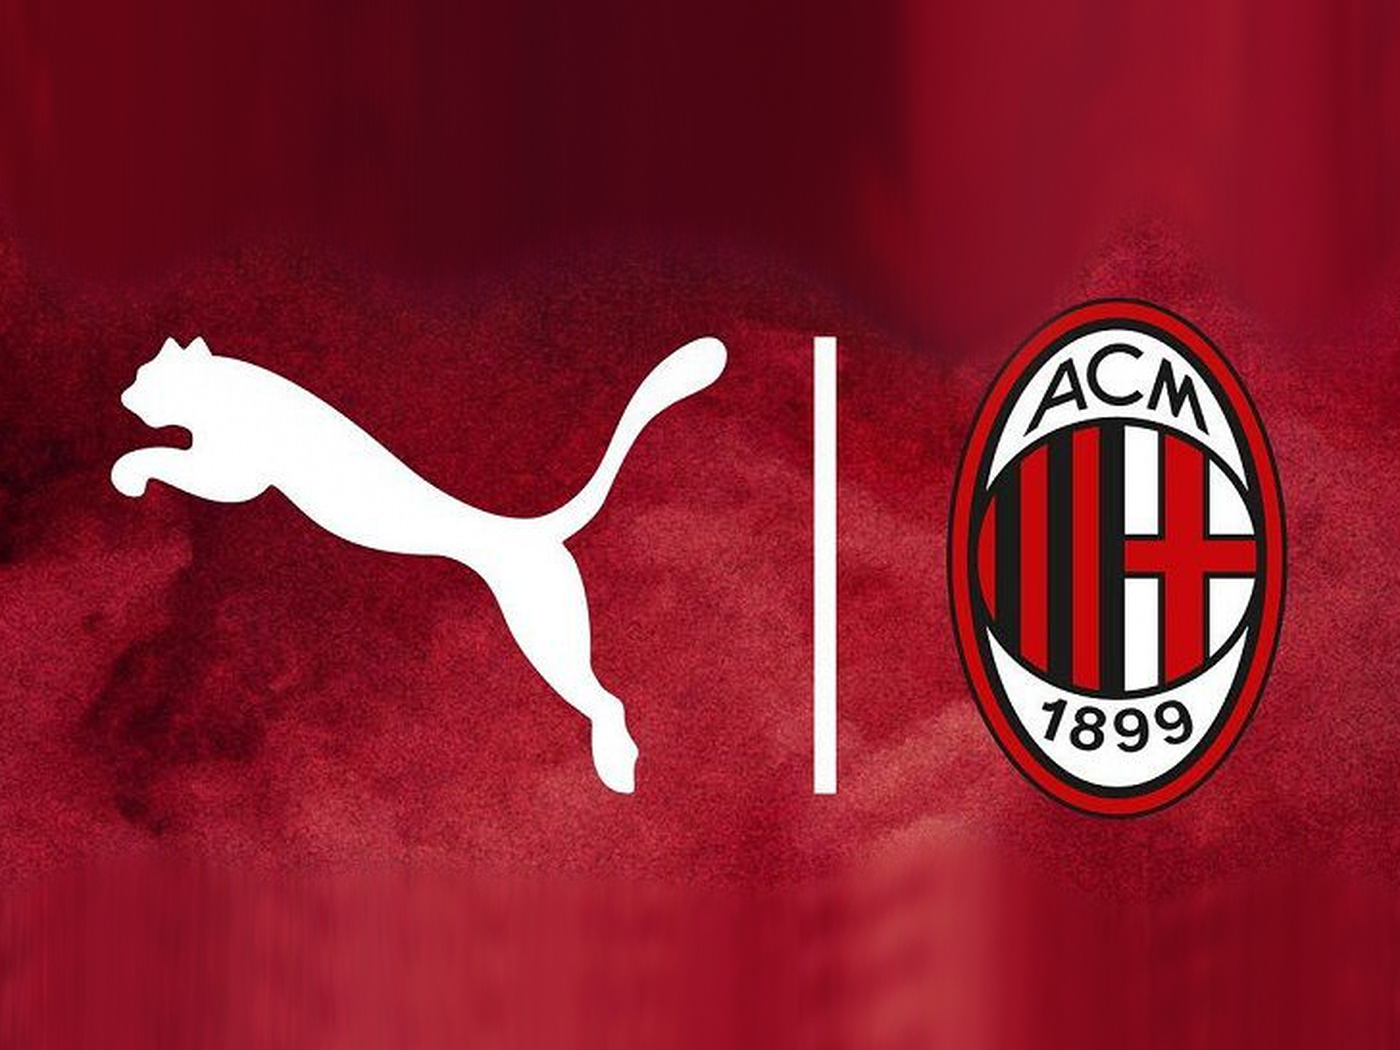 Leaked Ac Milan 2020 21 Shirt Design Will Feature Emboss From The Duomo The Ac Milan Offside